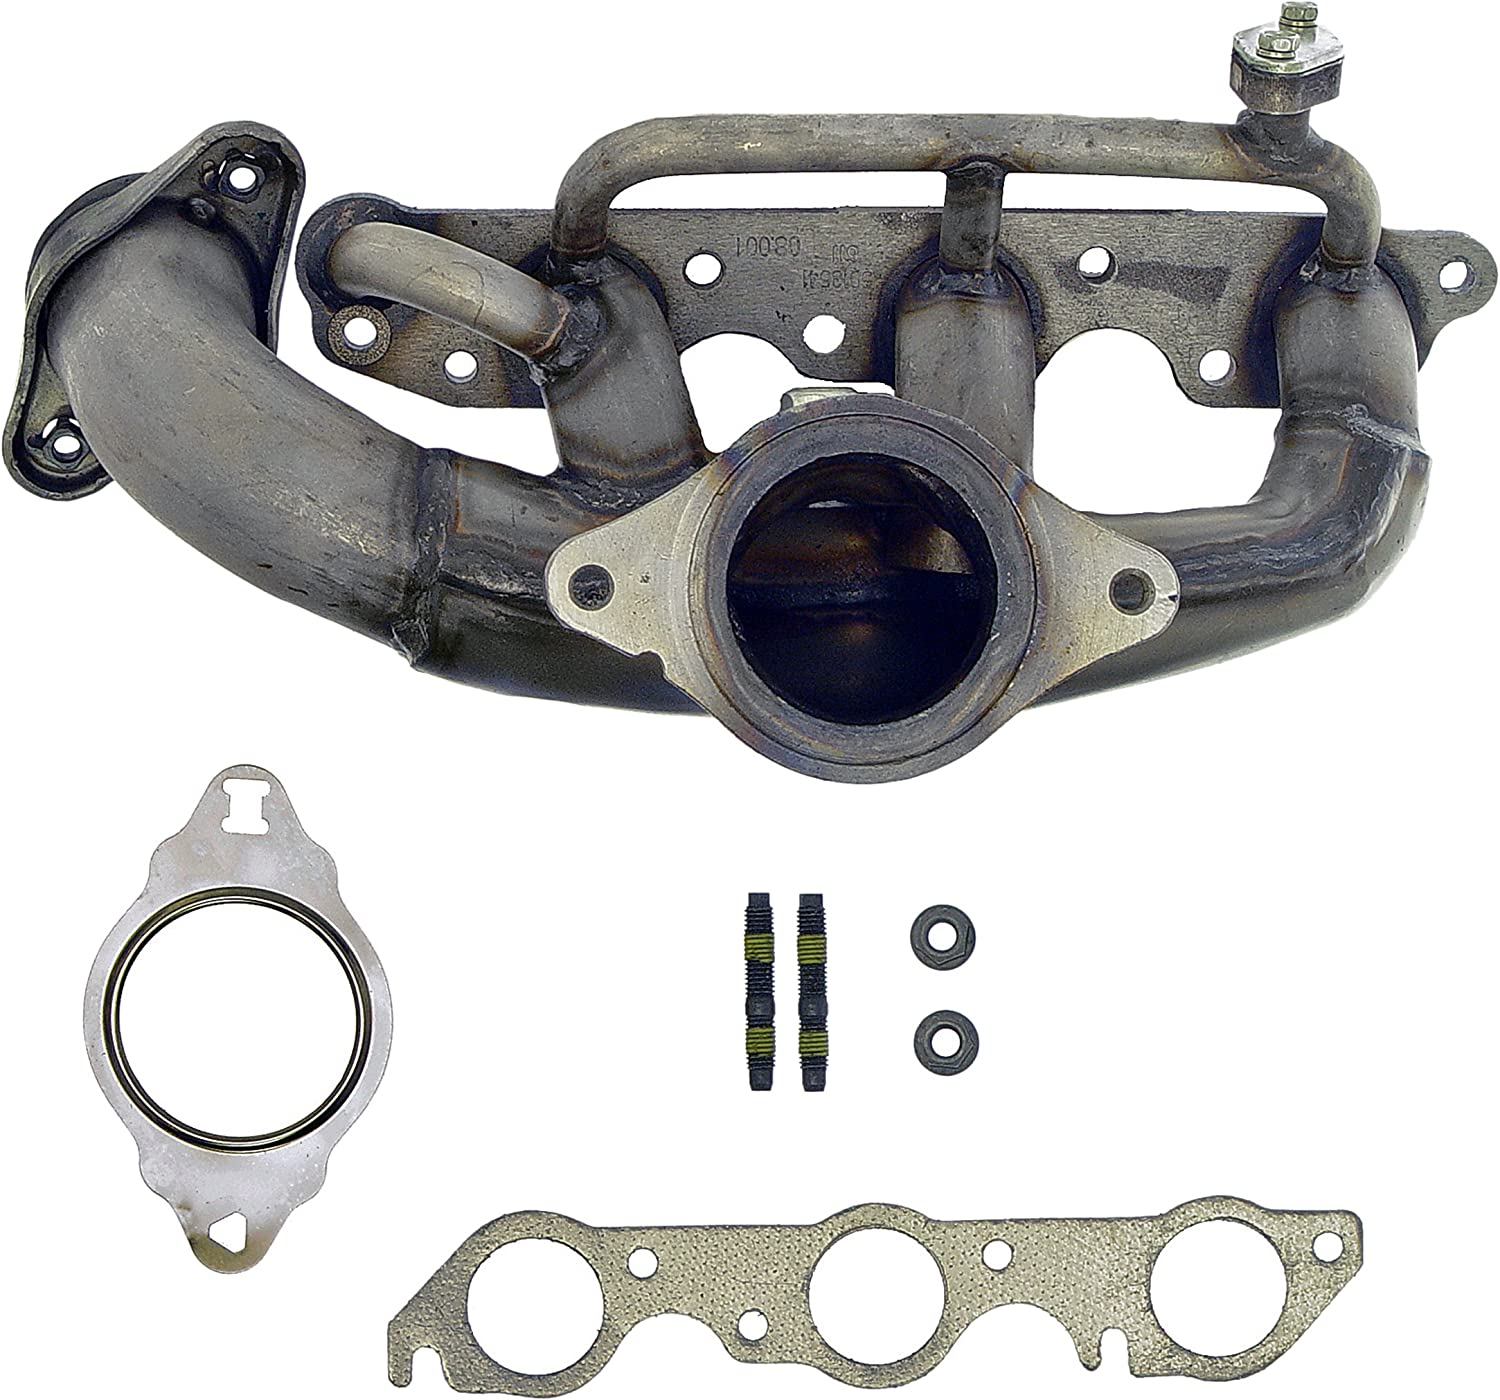 Dorman 674-186 Rear Exhaust Manifold Kit For Select Ford Models